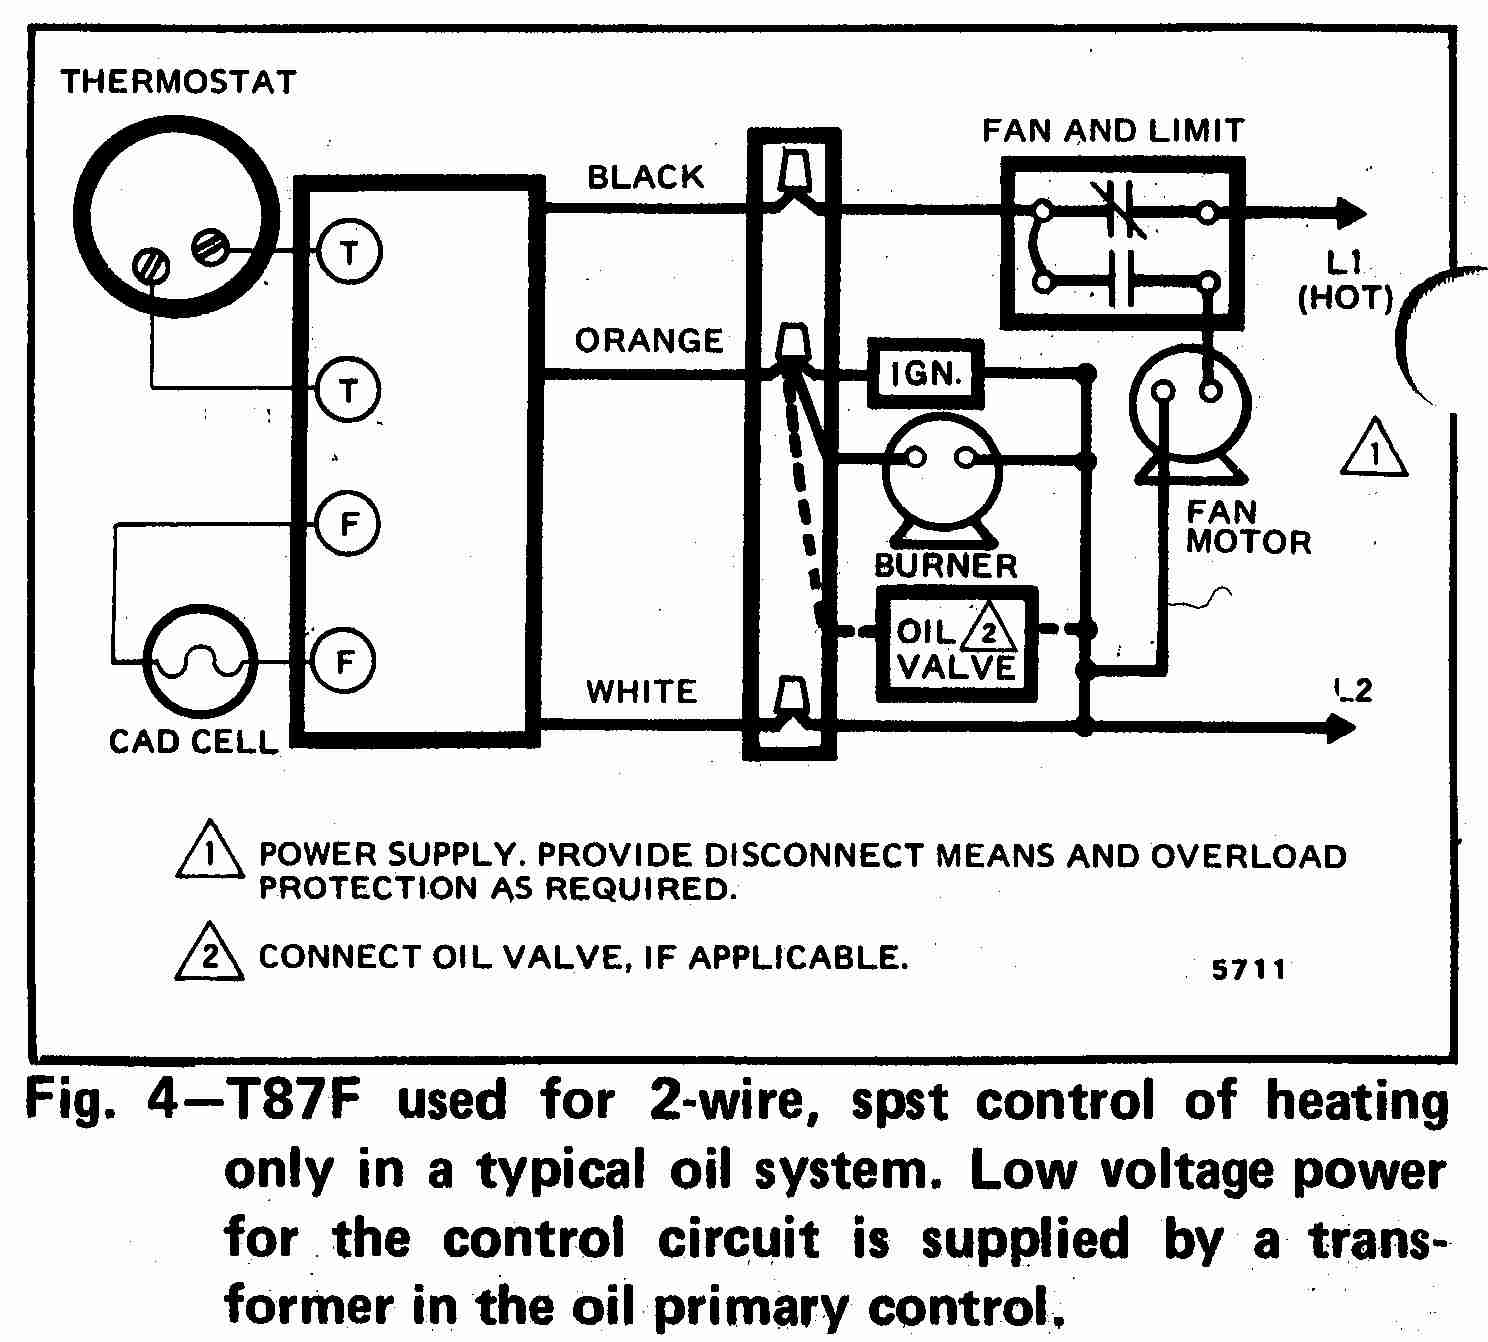 TT_T87F_0002_2W_DJF room thermostat wiring diagrams for hvac systems wiring diagram for dummies at crackthecode.co